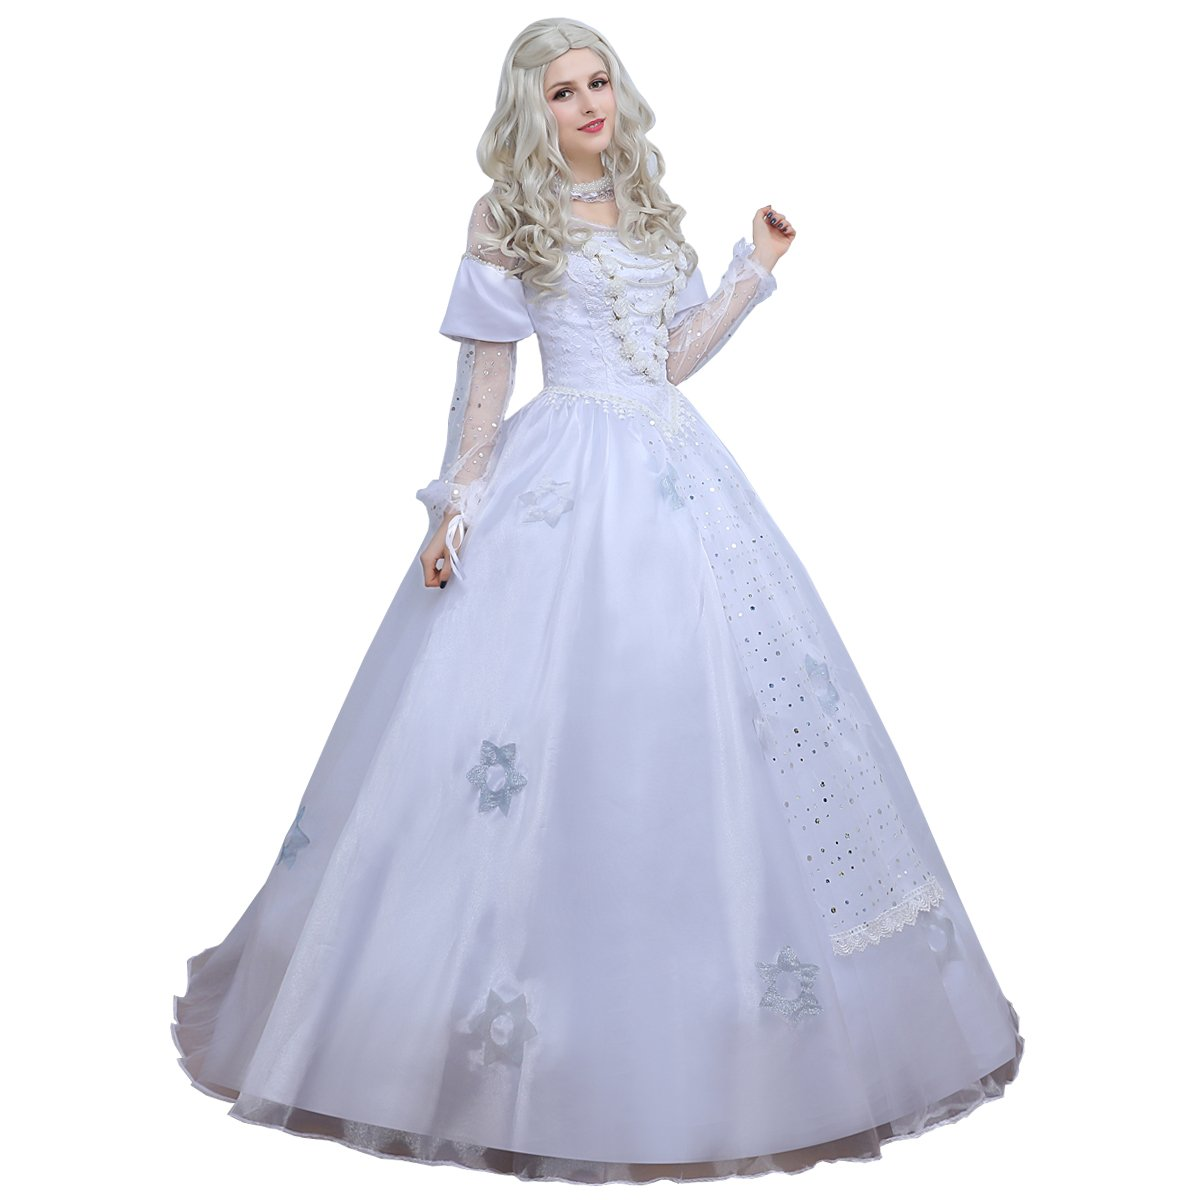 Angelaicos Womens White Queen Costume Long Lace Bridal Dress Luxury Gown (S)